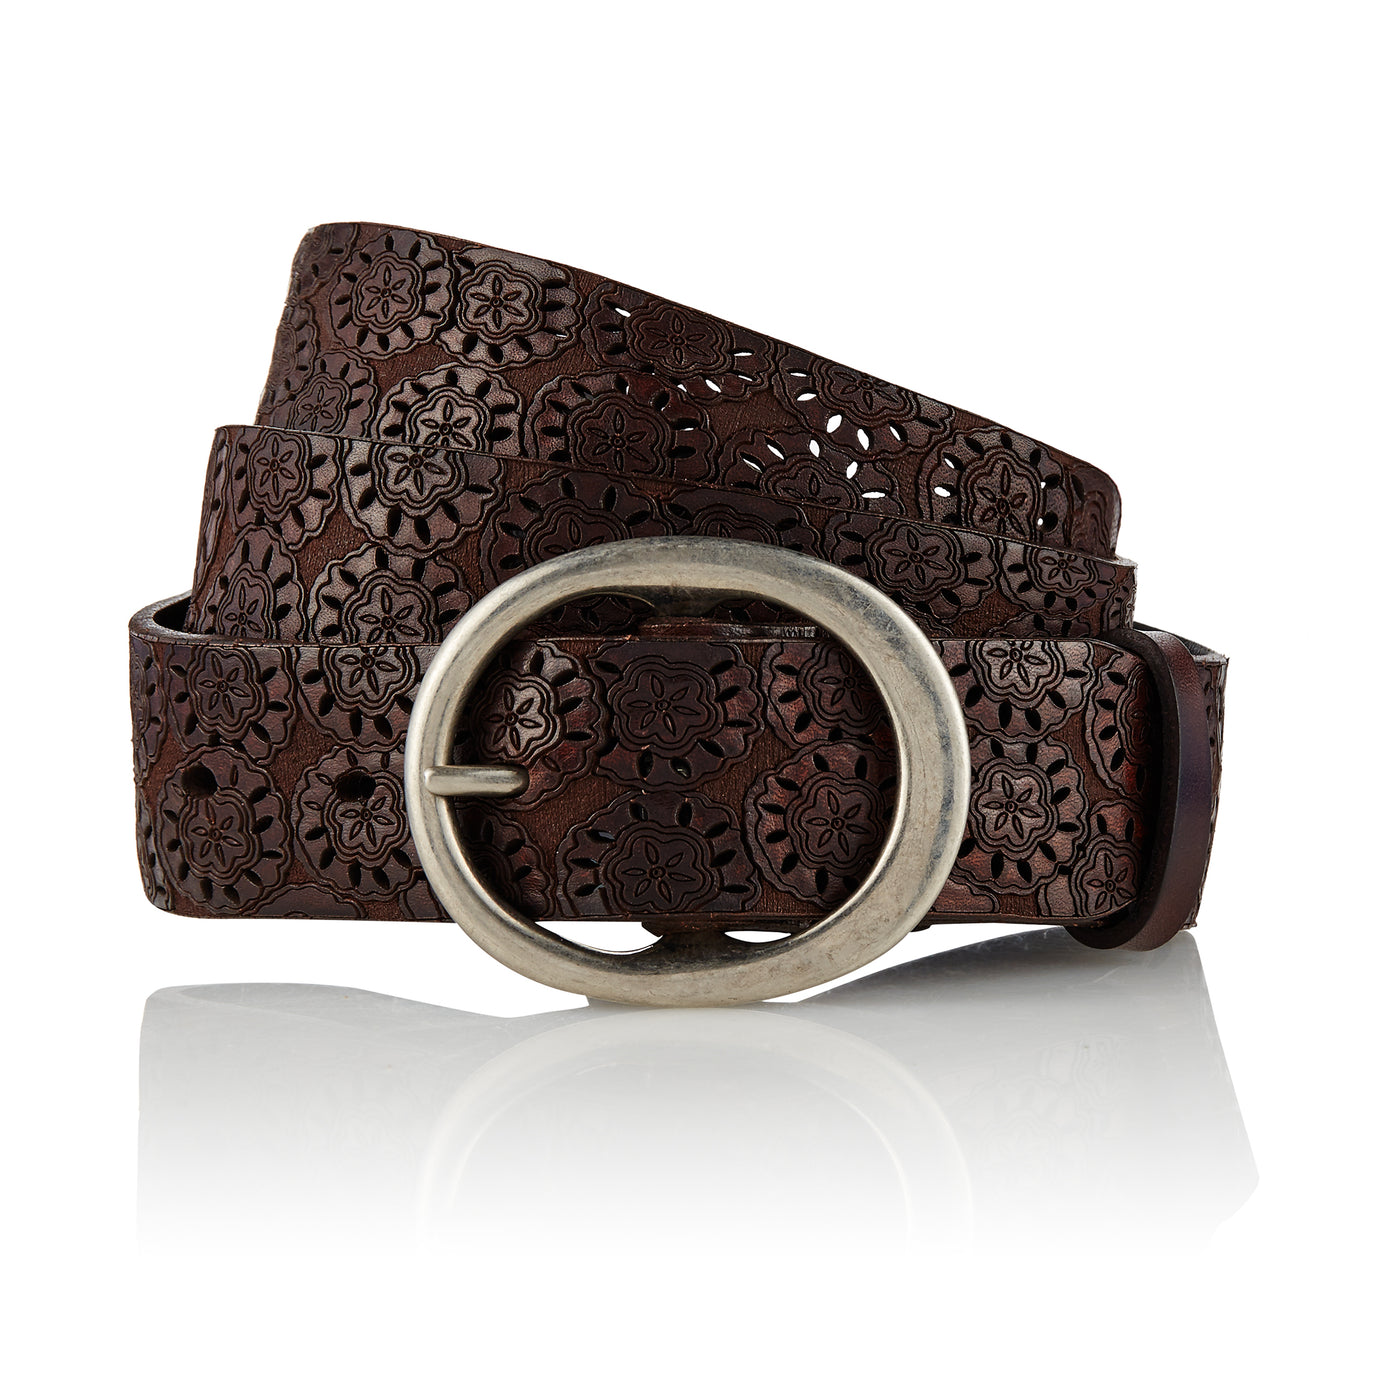 Asmat - Handcrafted Italian Belt / Dark Brown